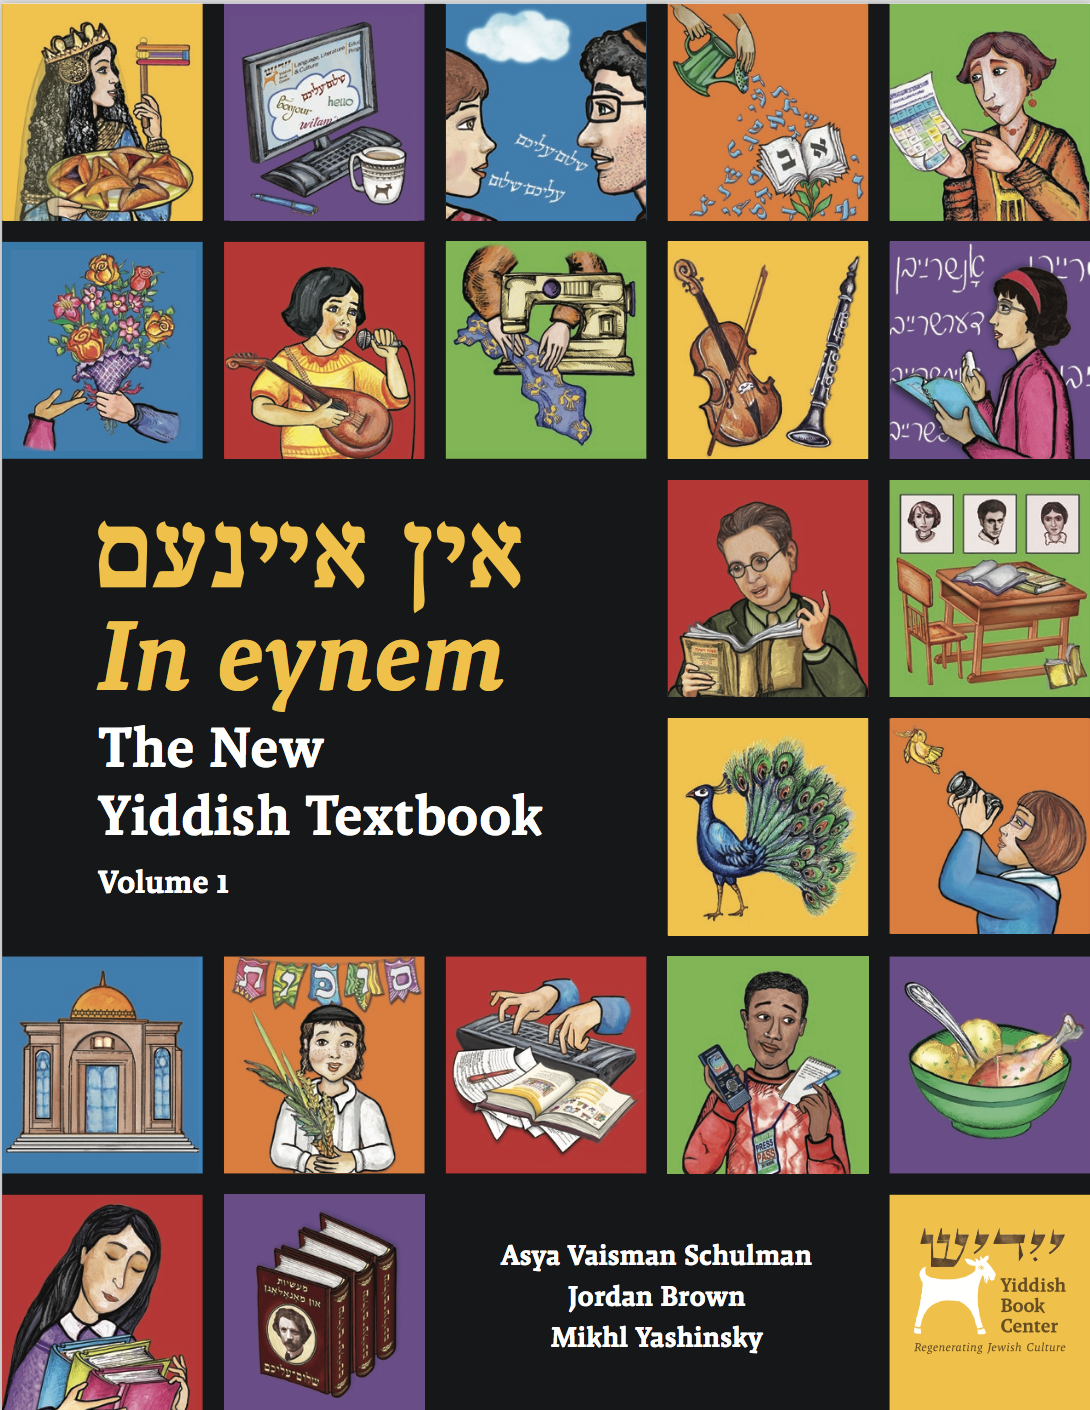 "<p>The cov­er of <em>In eynem</em>, forth­com­ing in sum­mer <span class=""numbers"">2020</span> from the White Goat Press, the imprint of the Yid­dish Book Cen­ter, with illus­tra­tions by Alexan­der Vais­man and Shu­ra&nbsp;Vaisman.</p>"